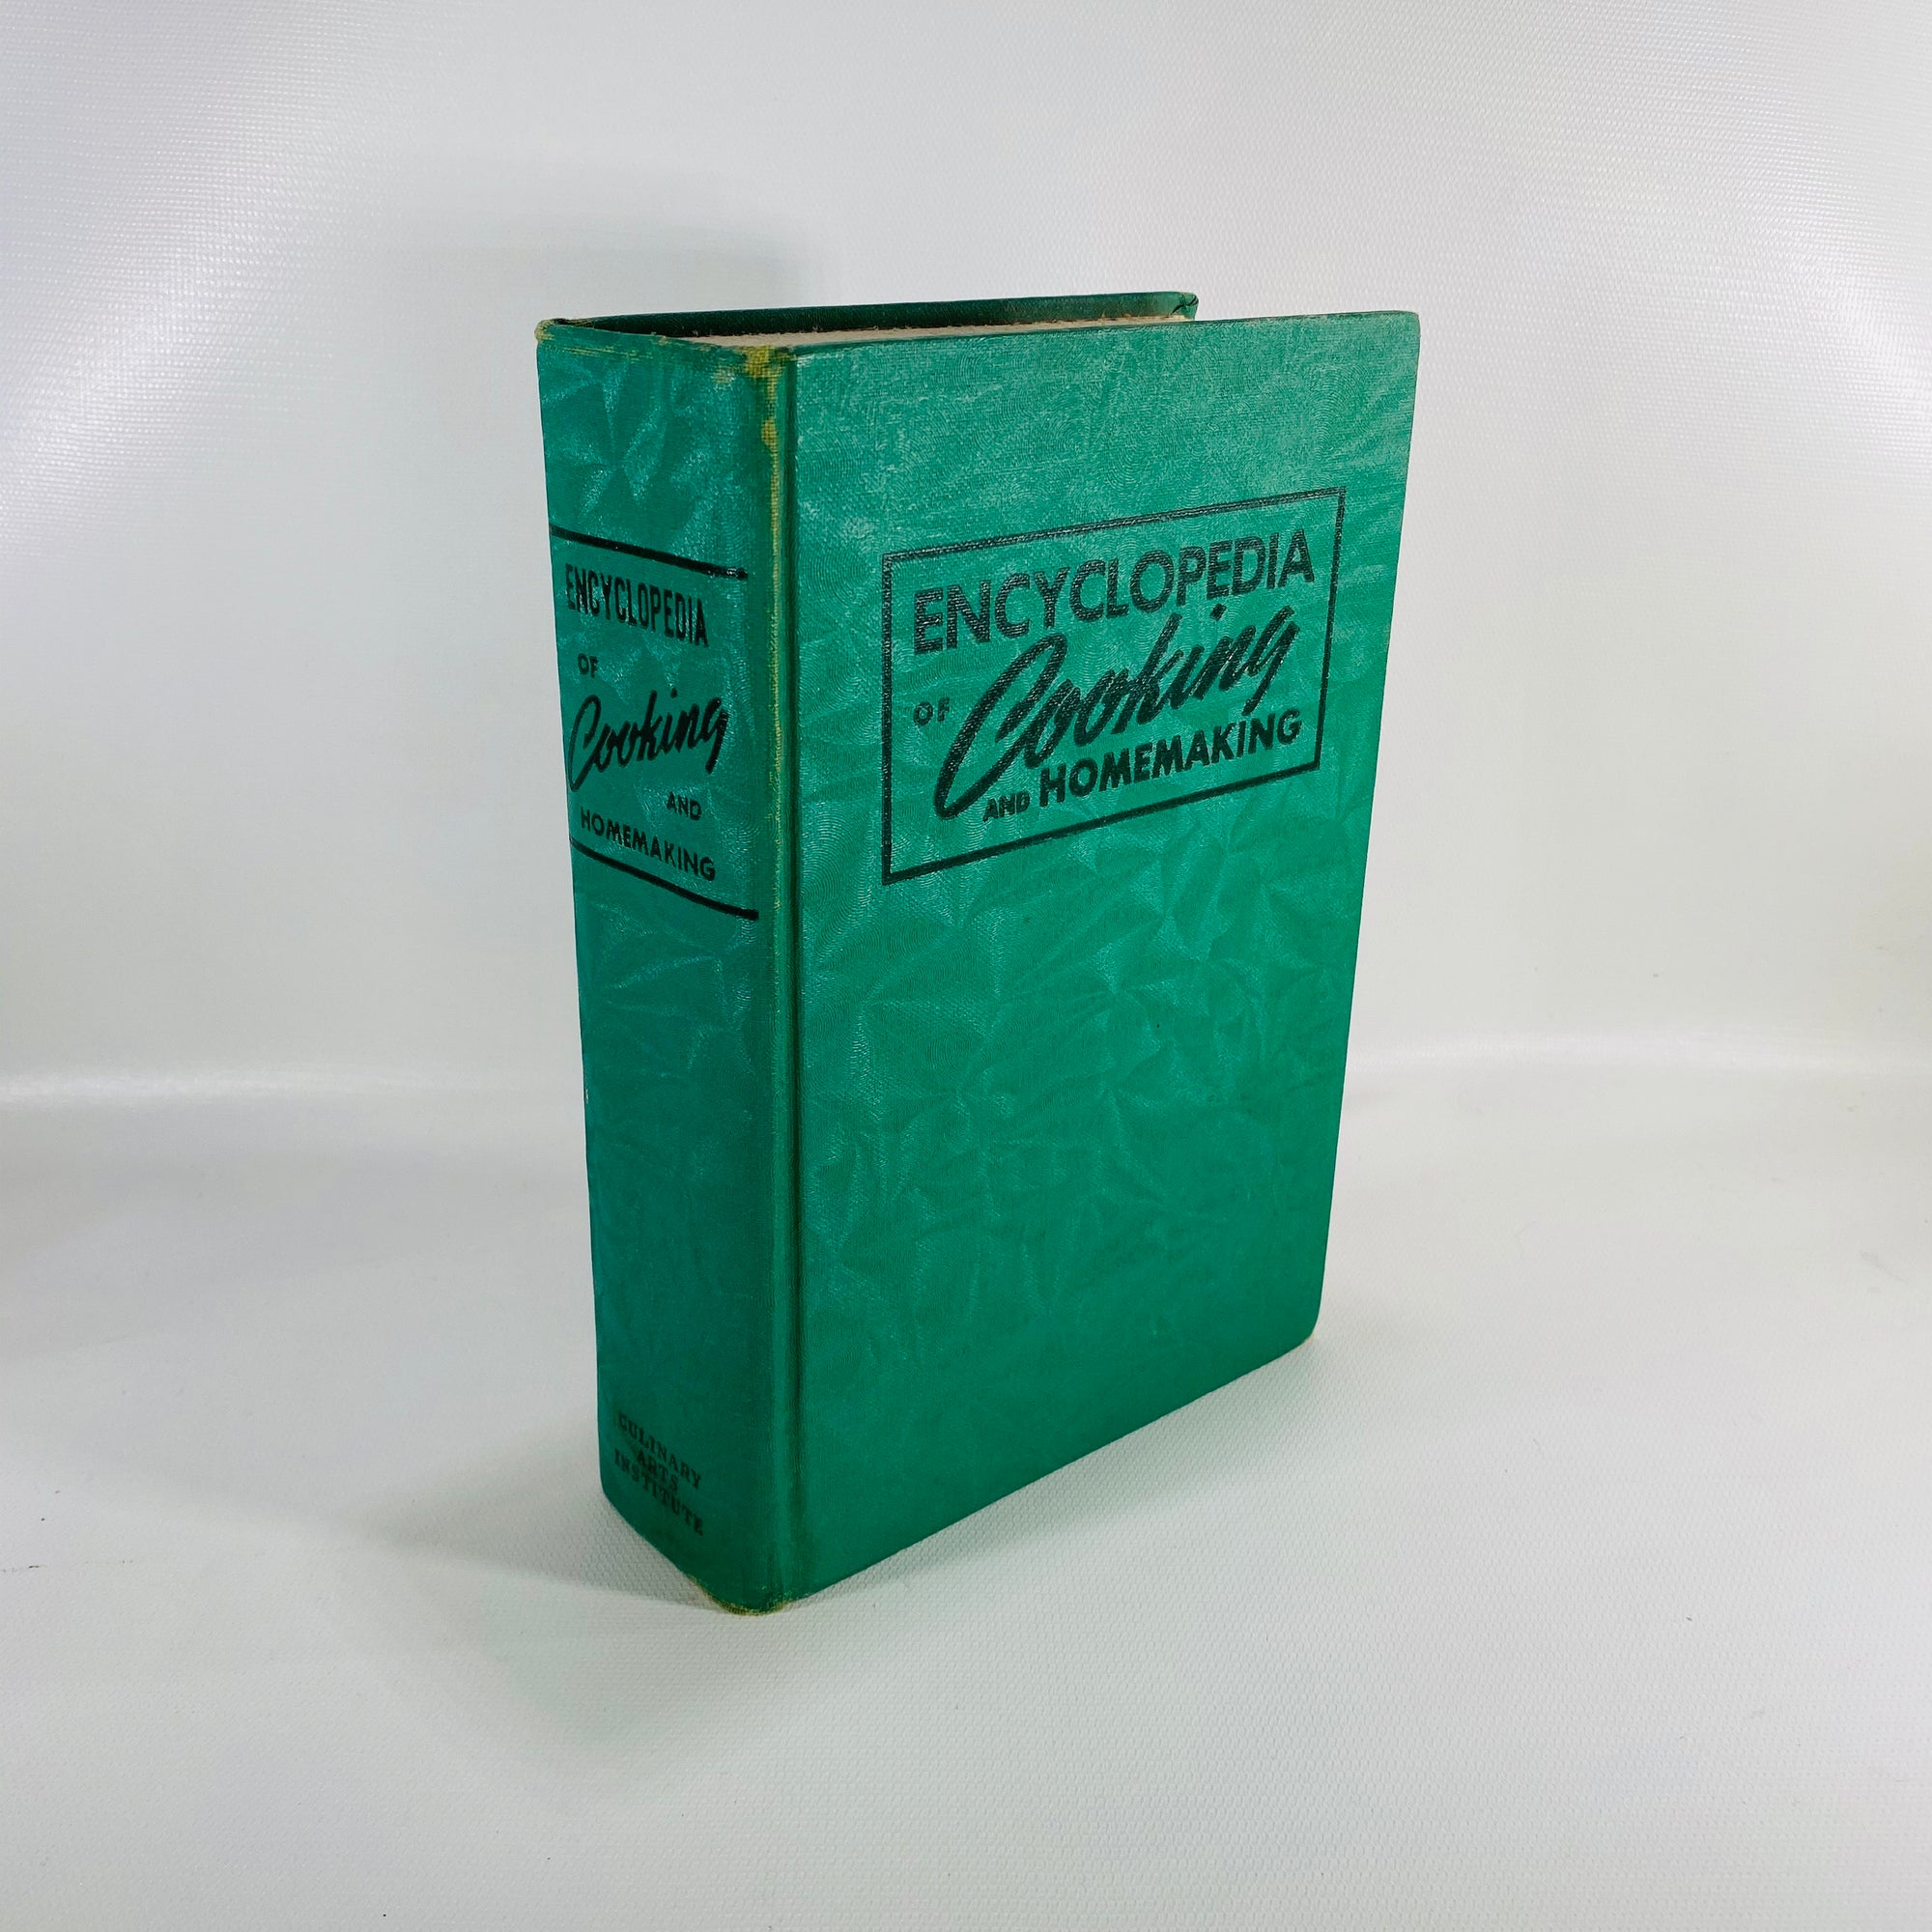 Encyclopedia of Cooking & Homemaking by 1940-Reading Vintage